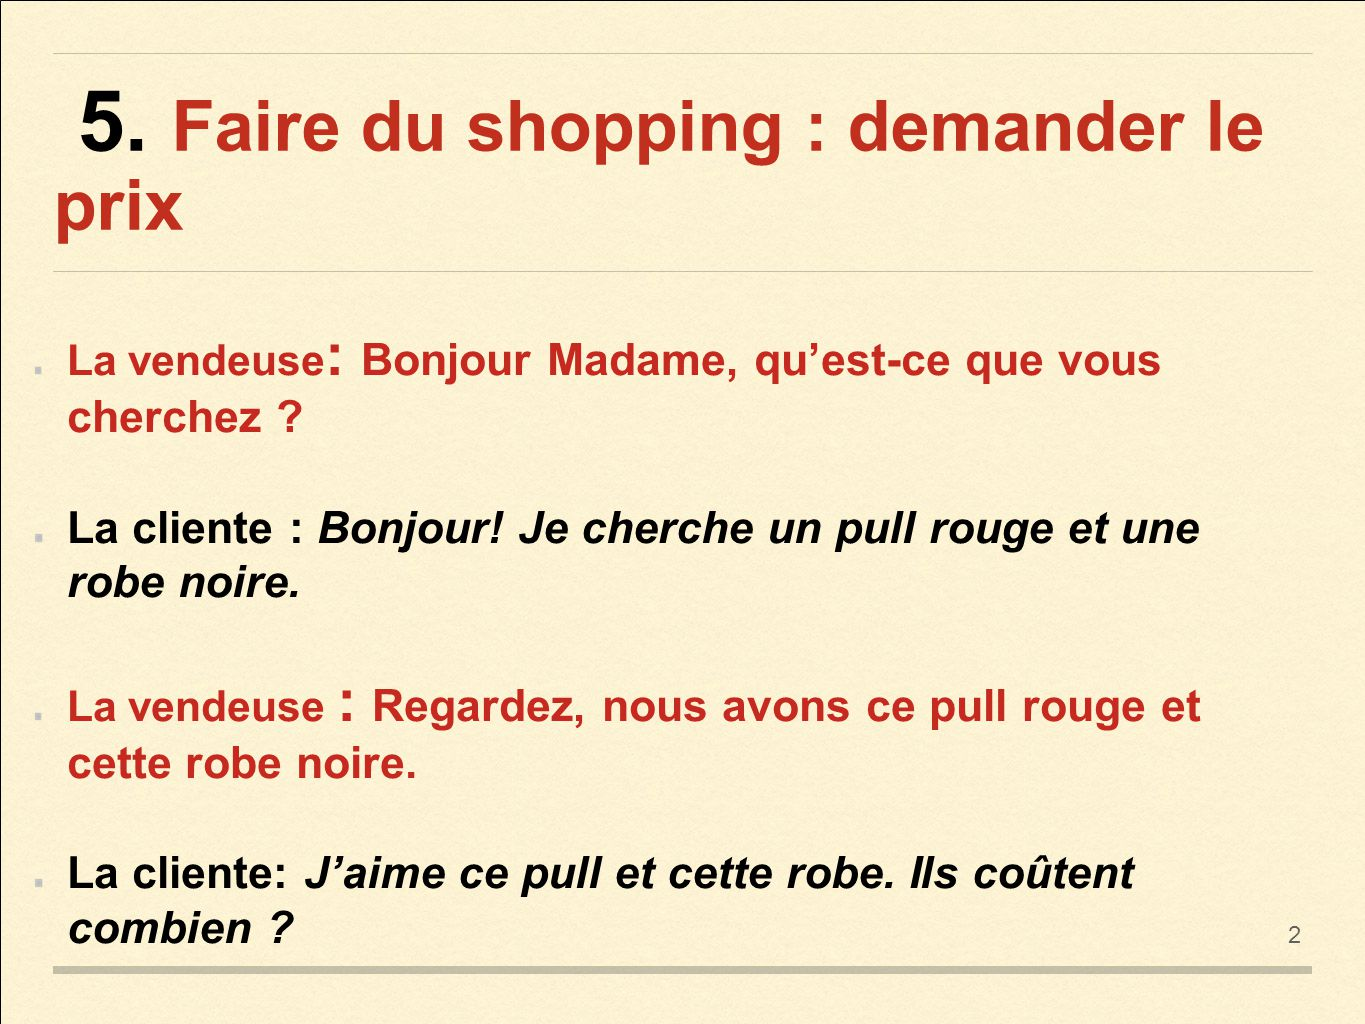 http://slideplayer.fr/slide/5409196/17/images/27/5.+Faire+du+shopping+:+demander+le+prix.jpg